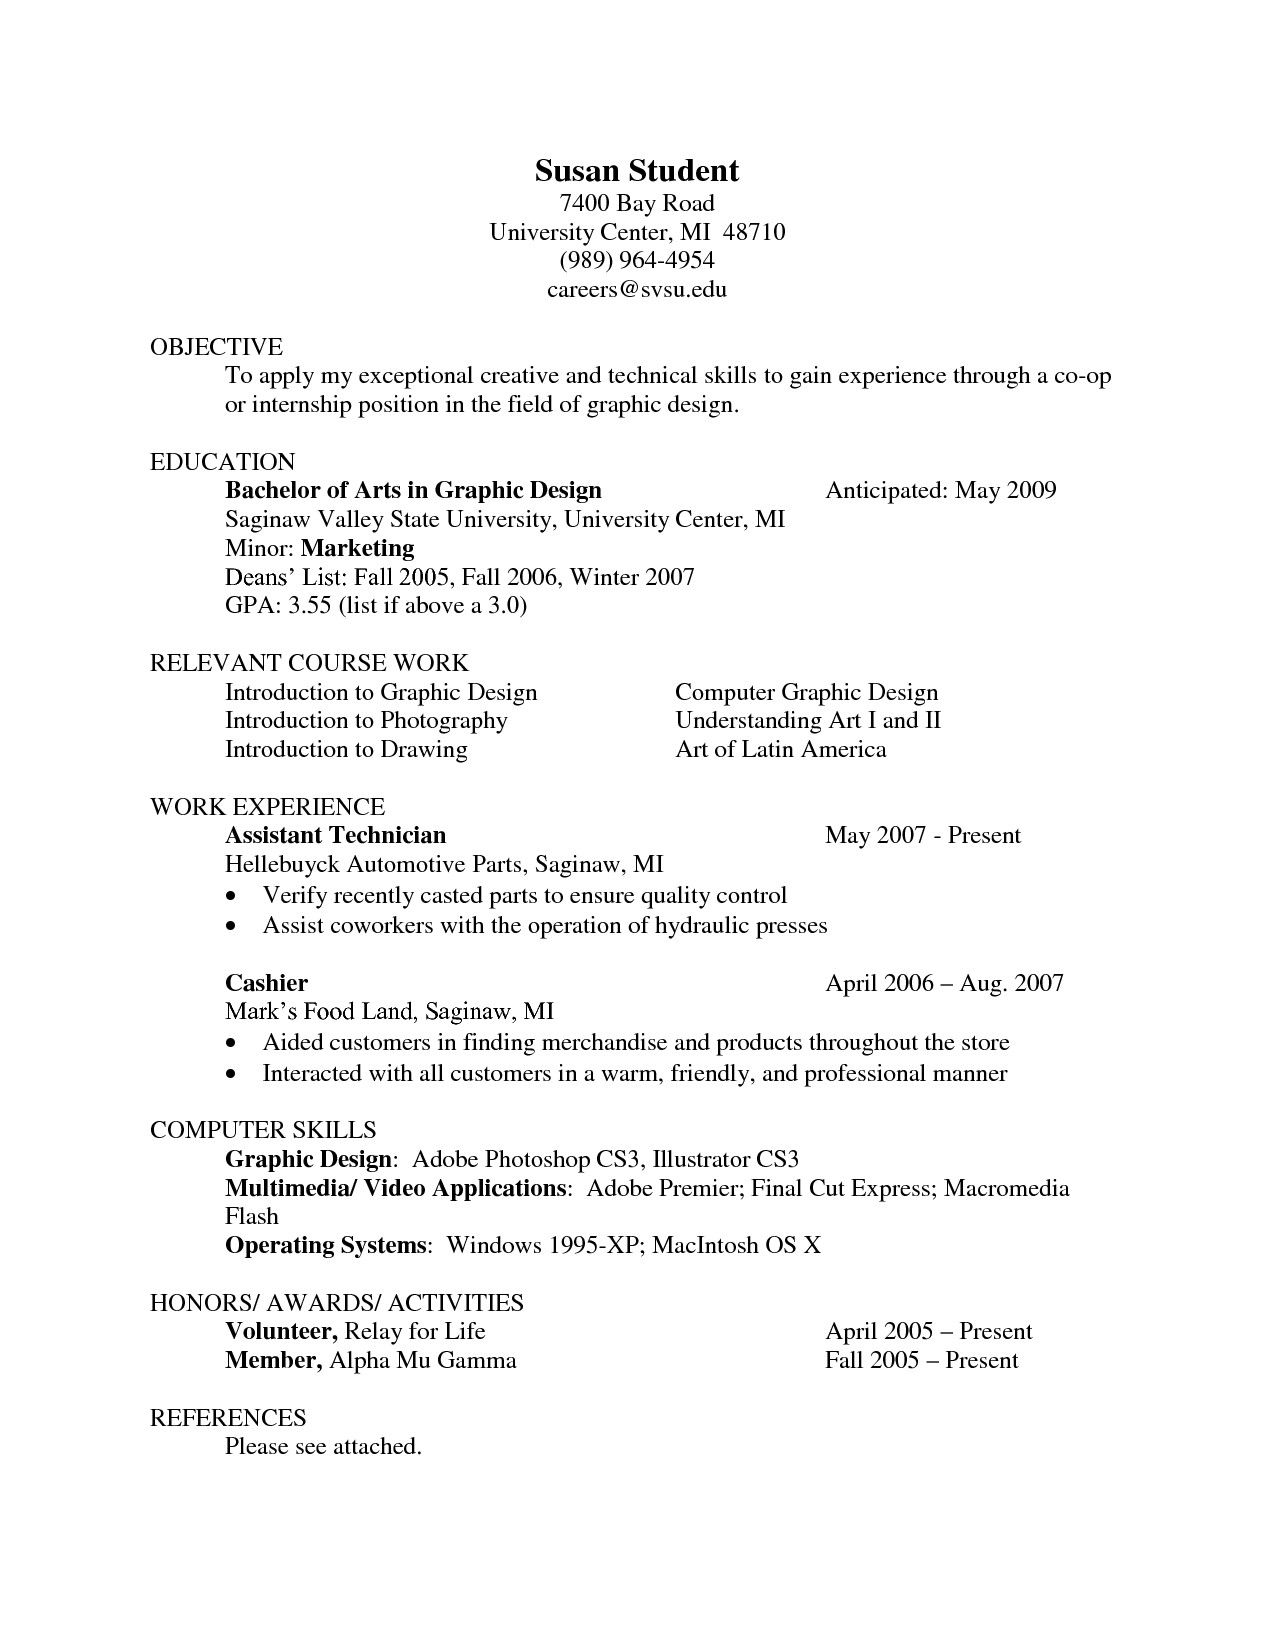 List Of Computer Skills For Resume Interesting Resume Examples References  Pinterest  Resume Examples